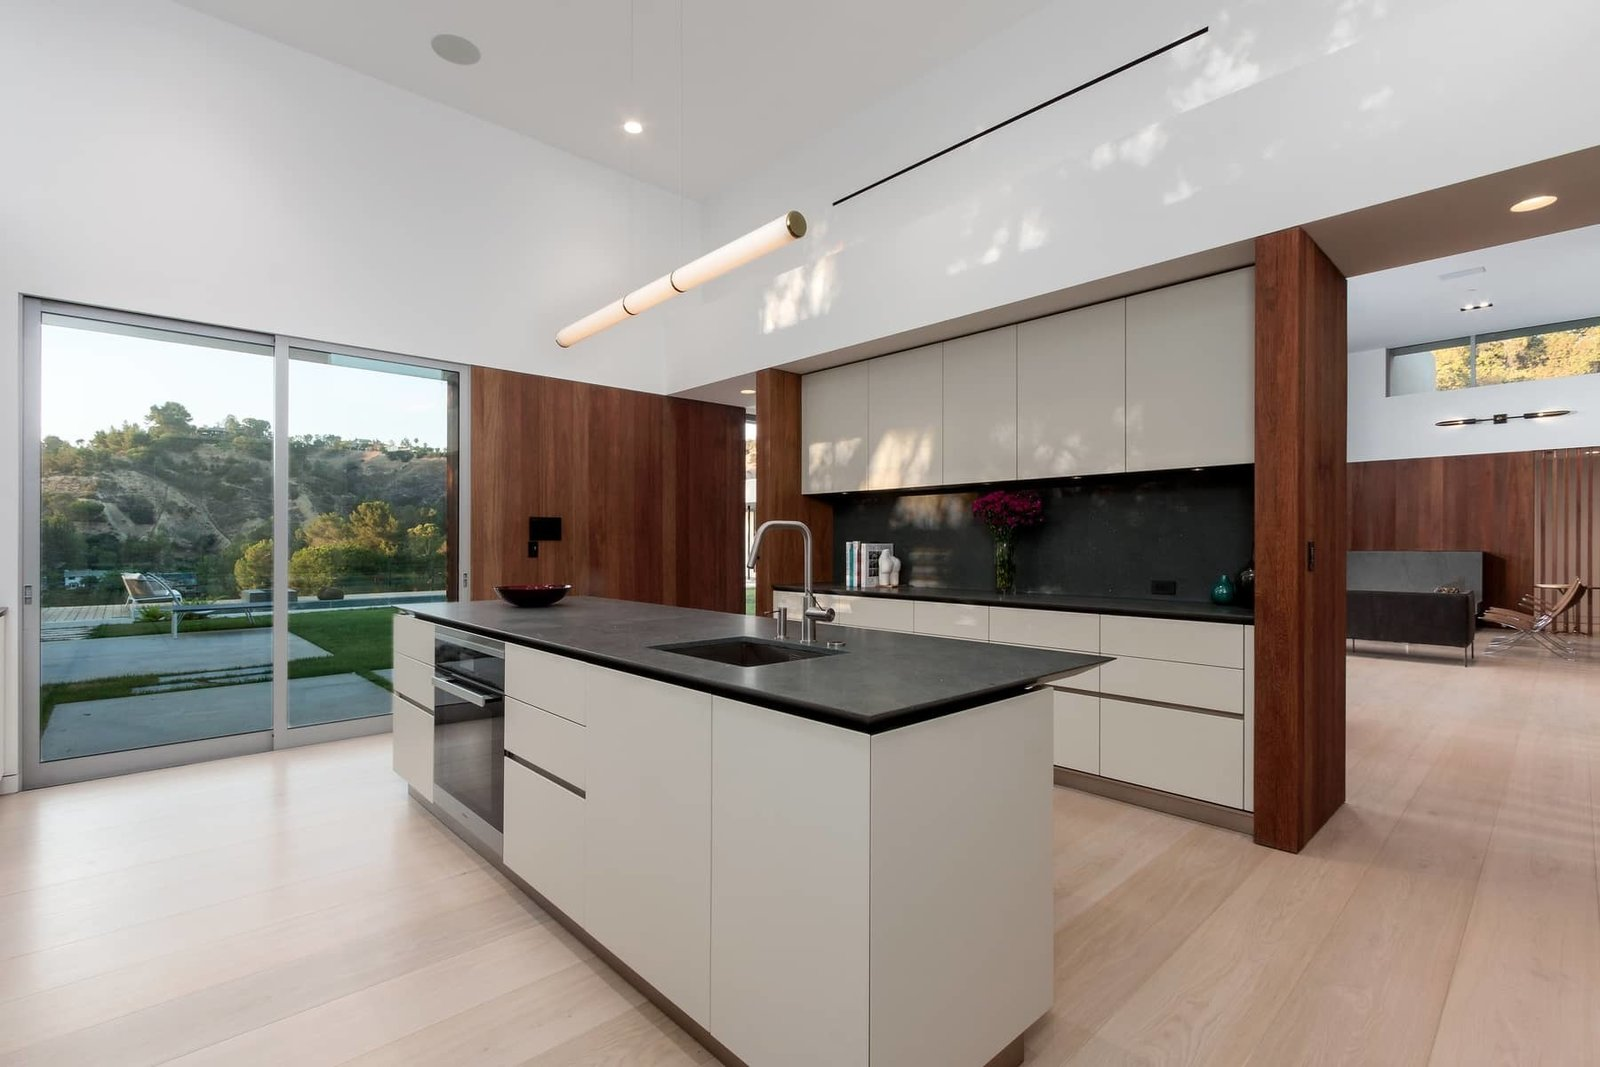 Boffi kitchen cabinets are a minimalist complement to Miele appliances, including a wine fridge and a built-in expresso machine. The Mini Endless pendant is by Roll & Hill.  Photo 5 of 10 in A Celeb-Worthy Home in Beverly Hills Asks $6.75M